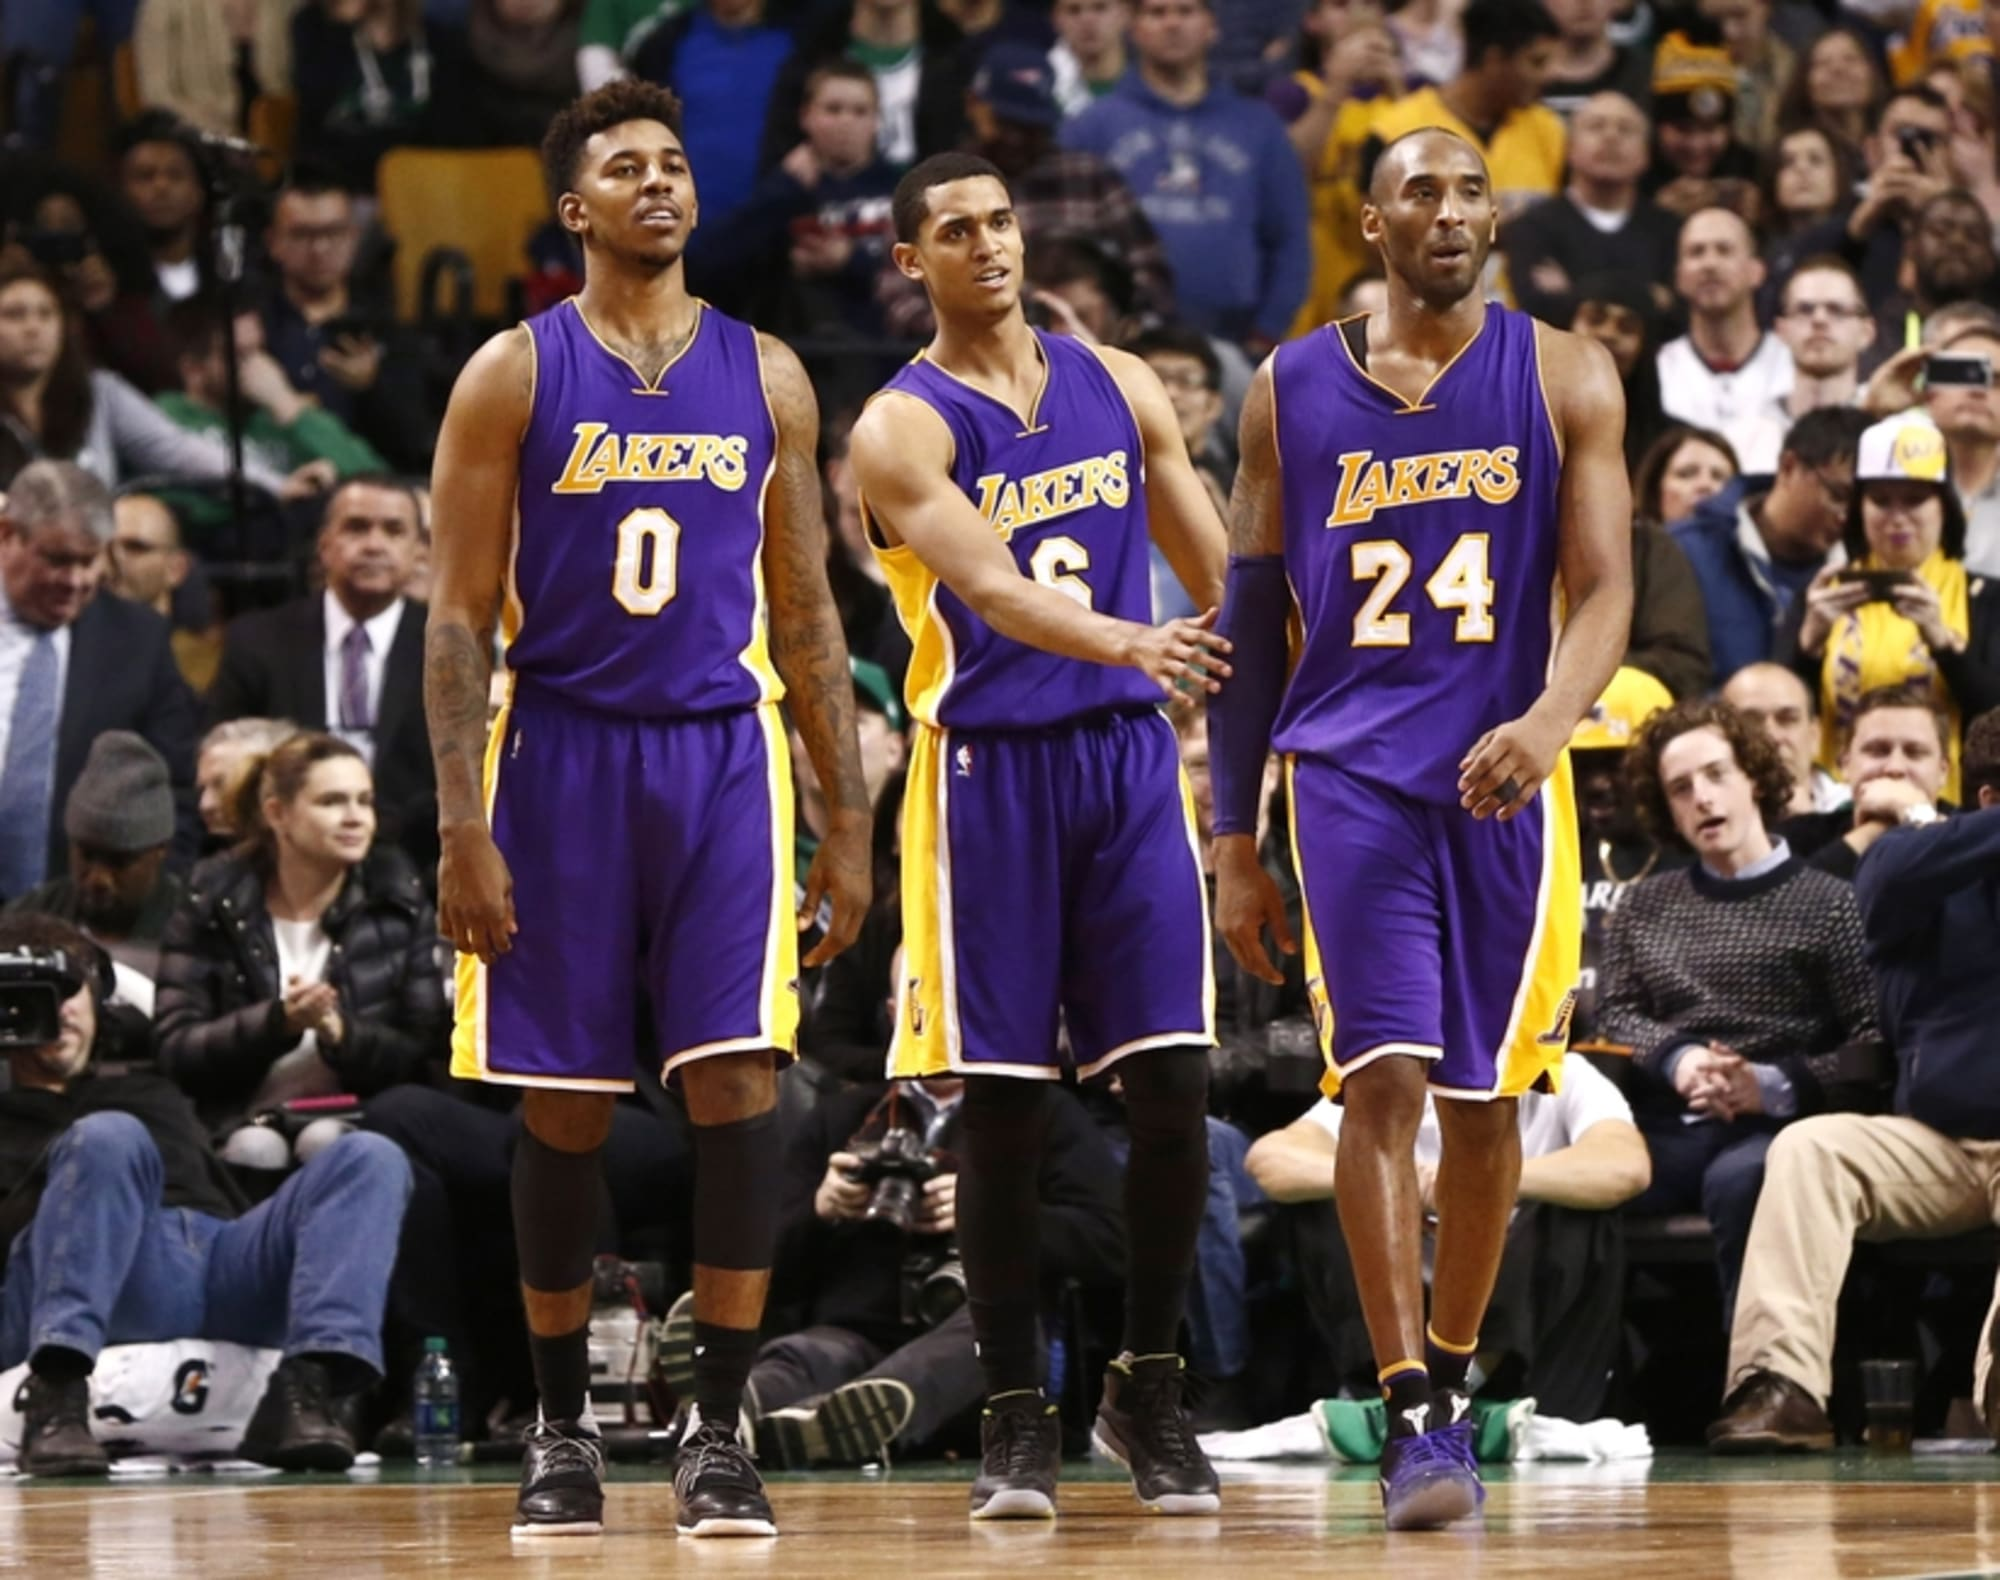 76ers vs Lakers live stream: Watch NBA online